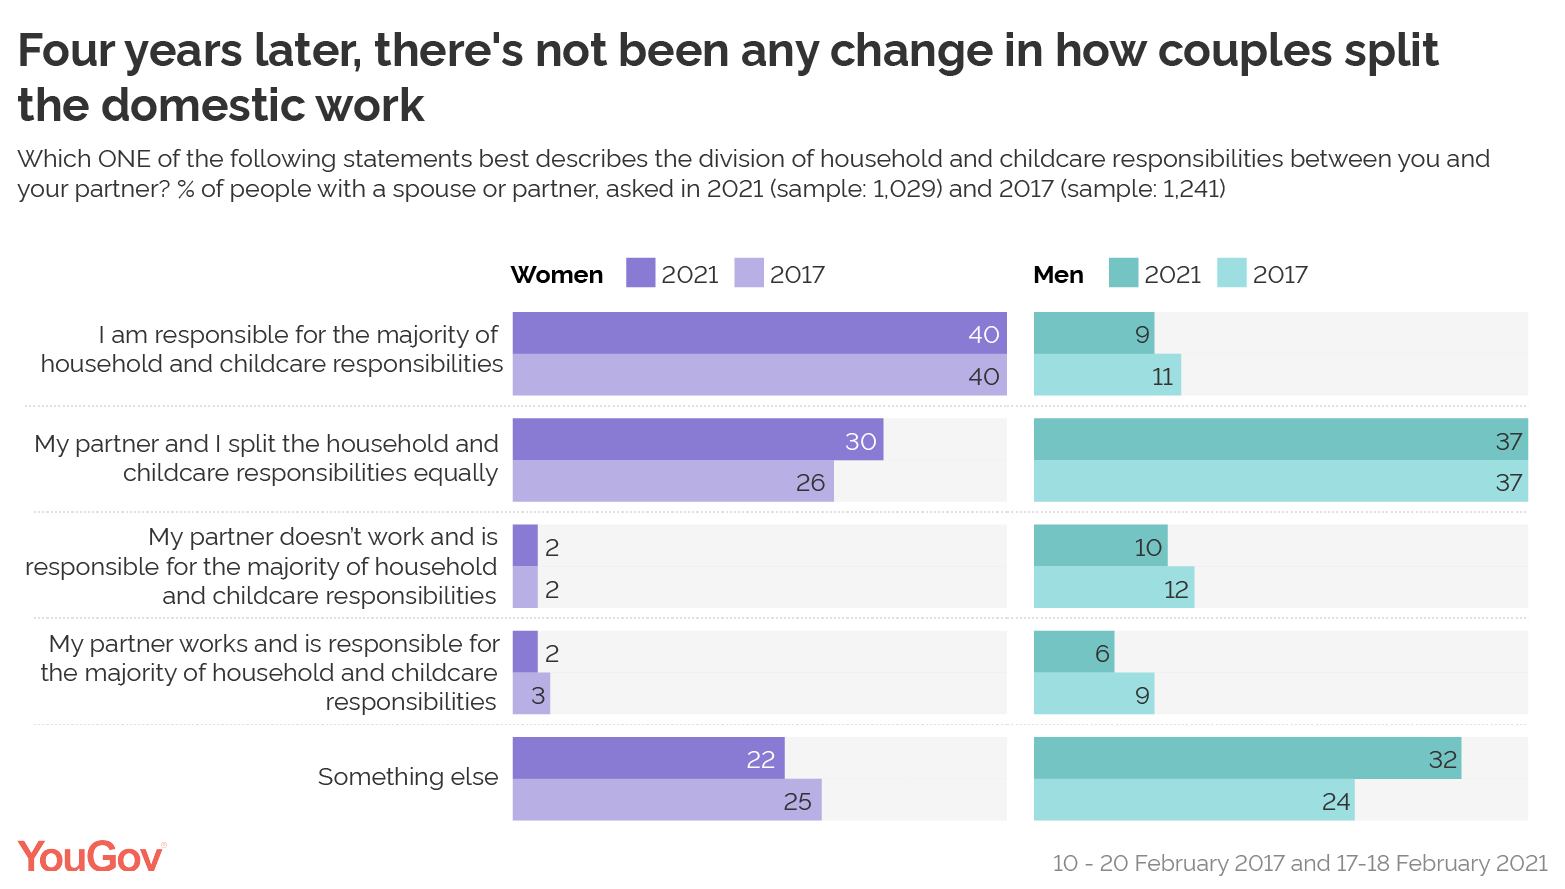 There's not been any change in how couples split the domestic work since 2017